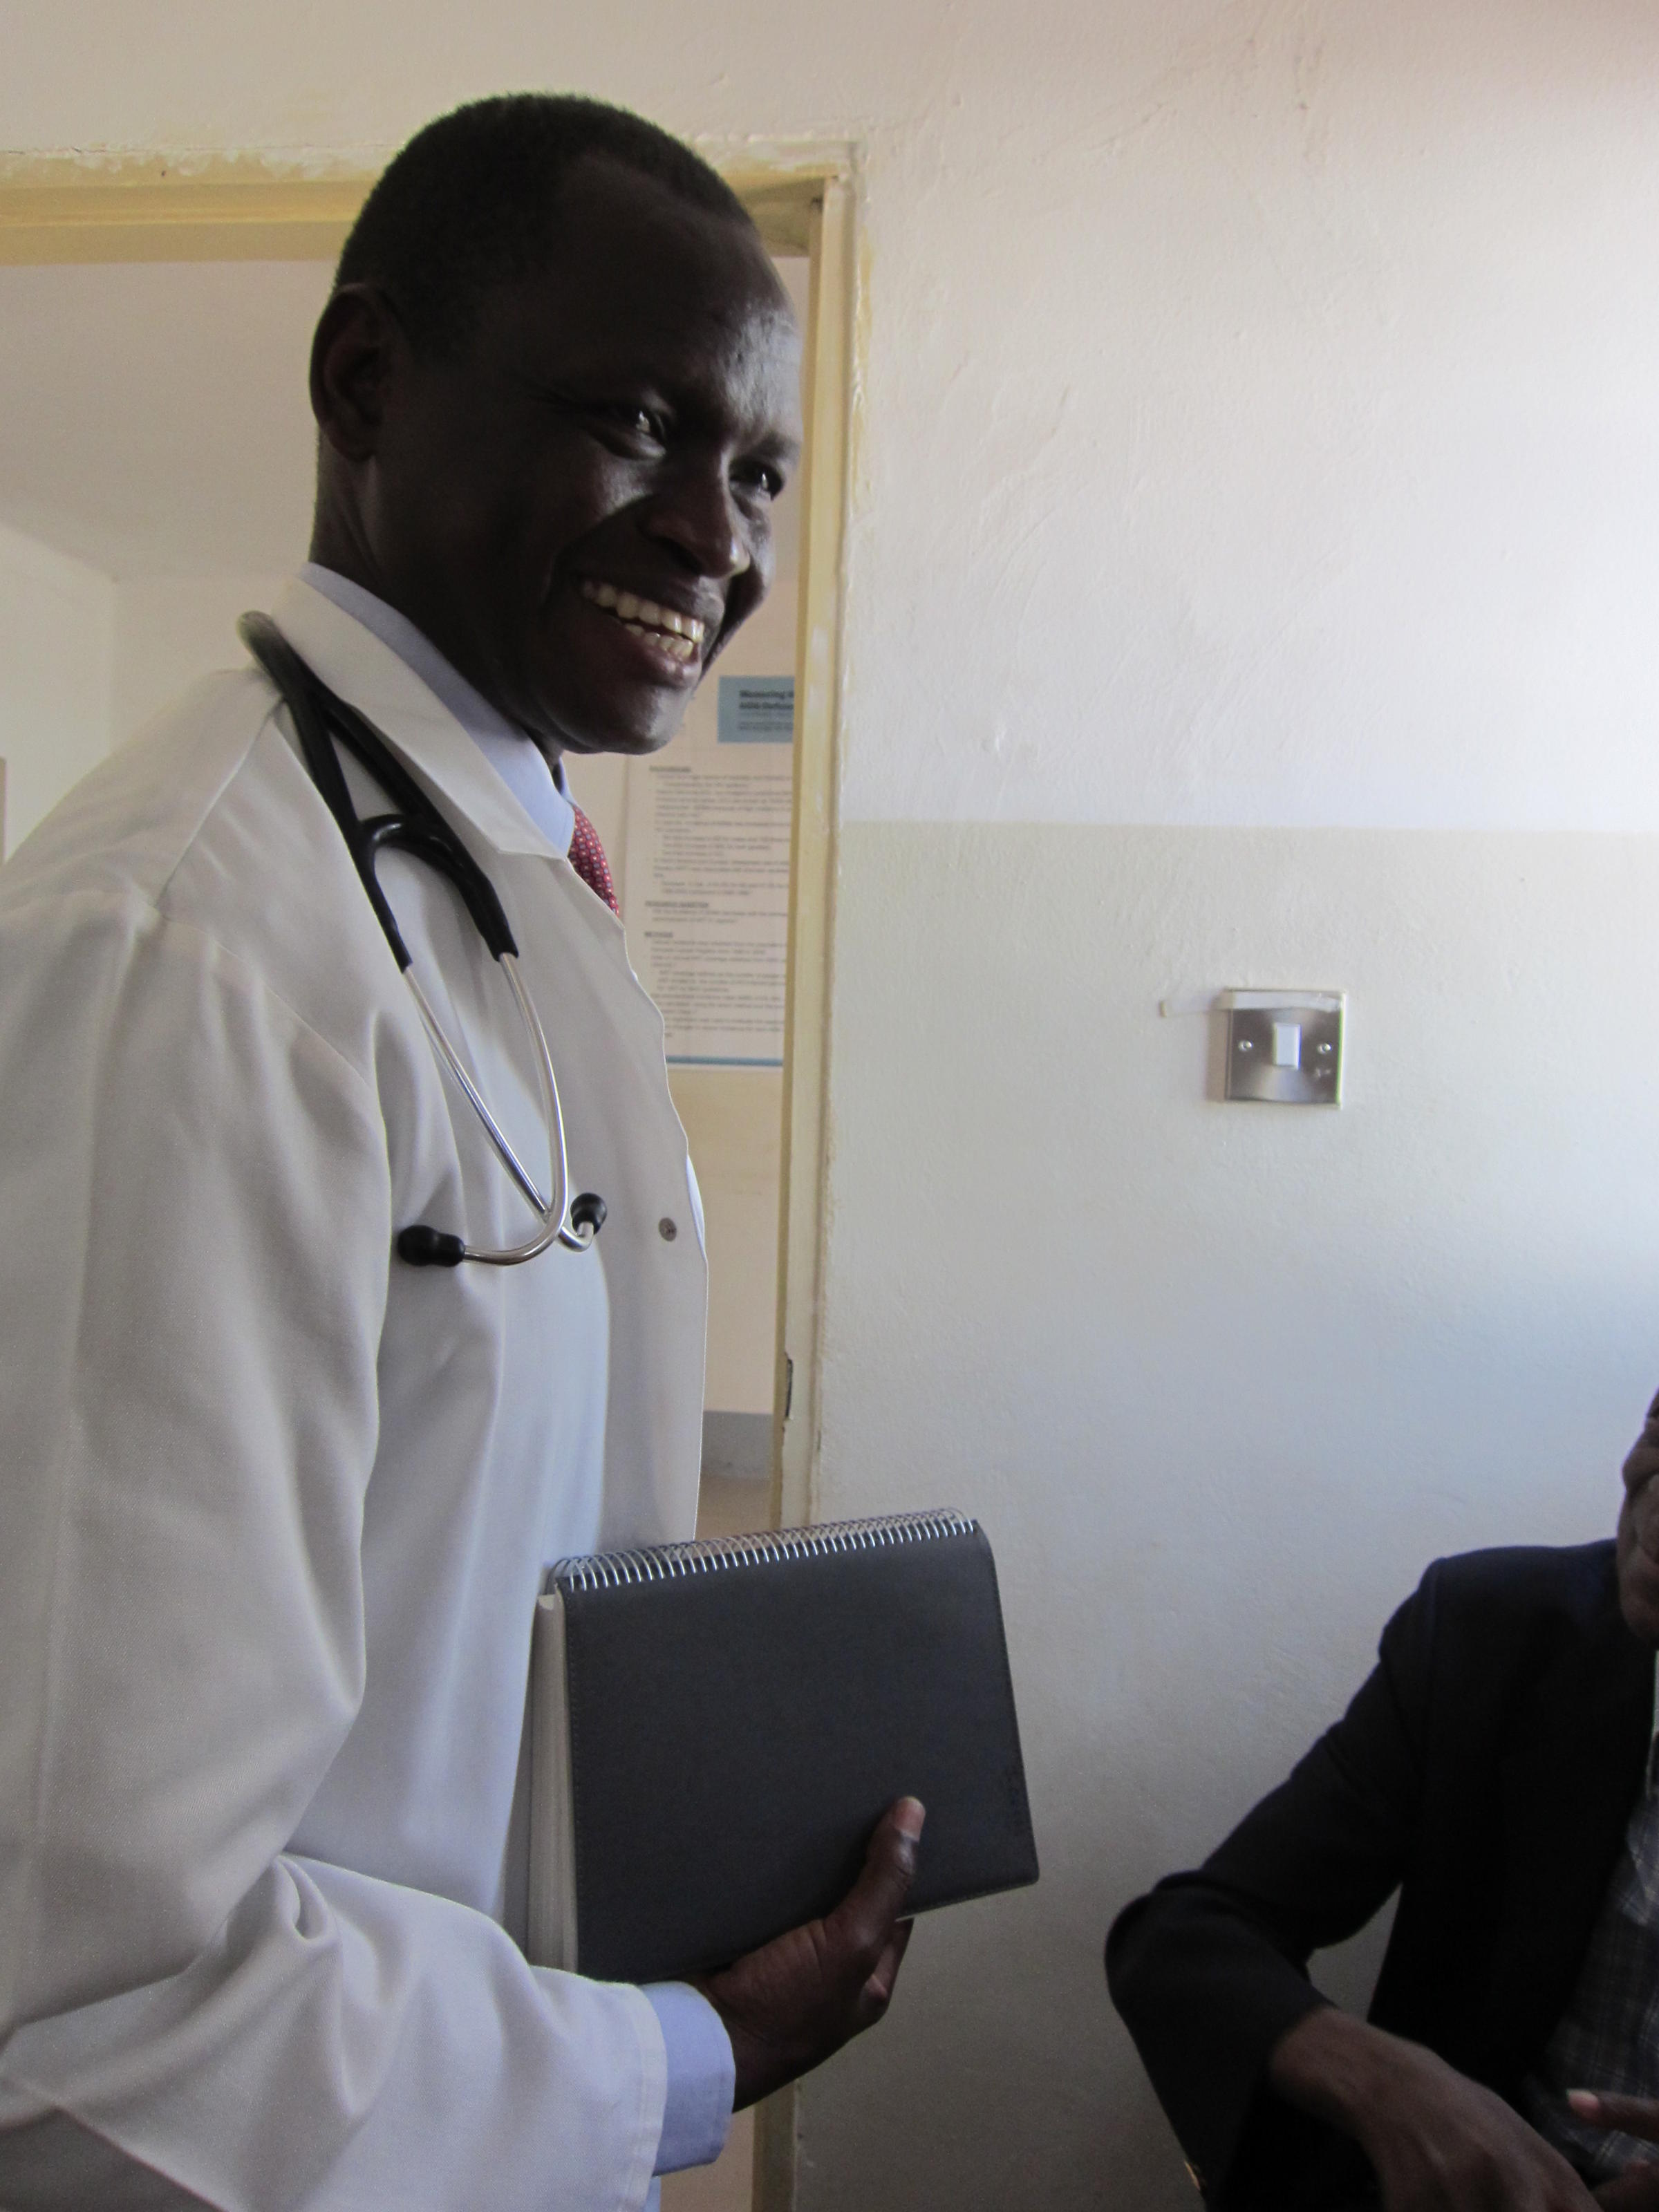 Seattle Doctor Takes Cancer Treatment To Developing World